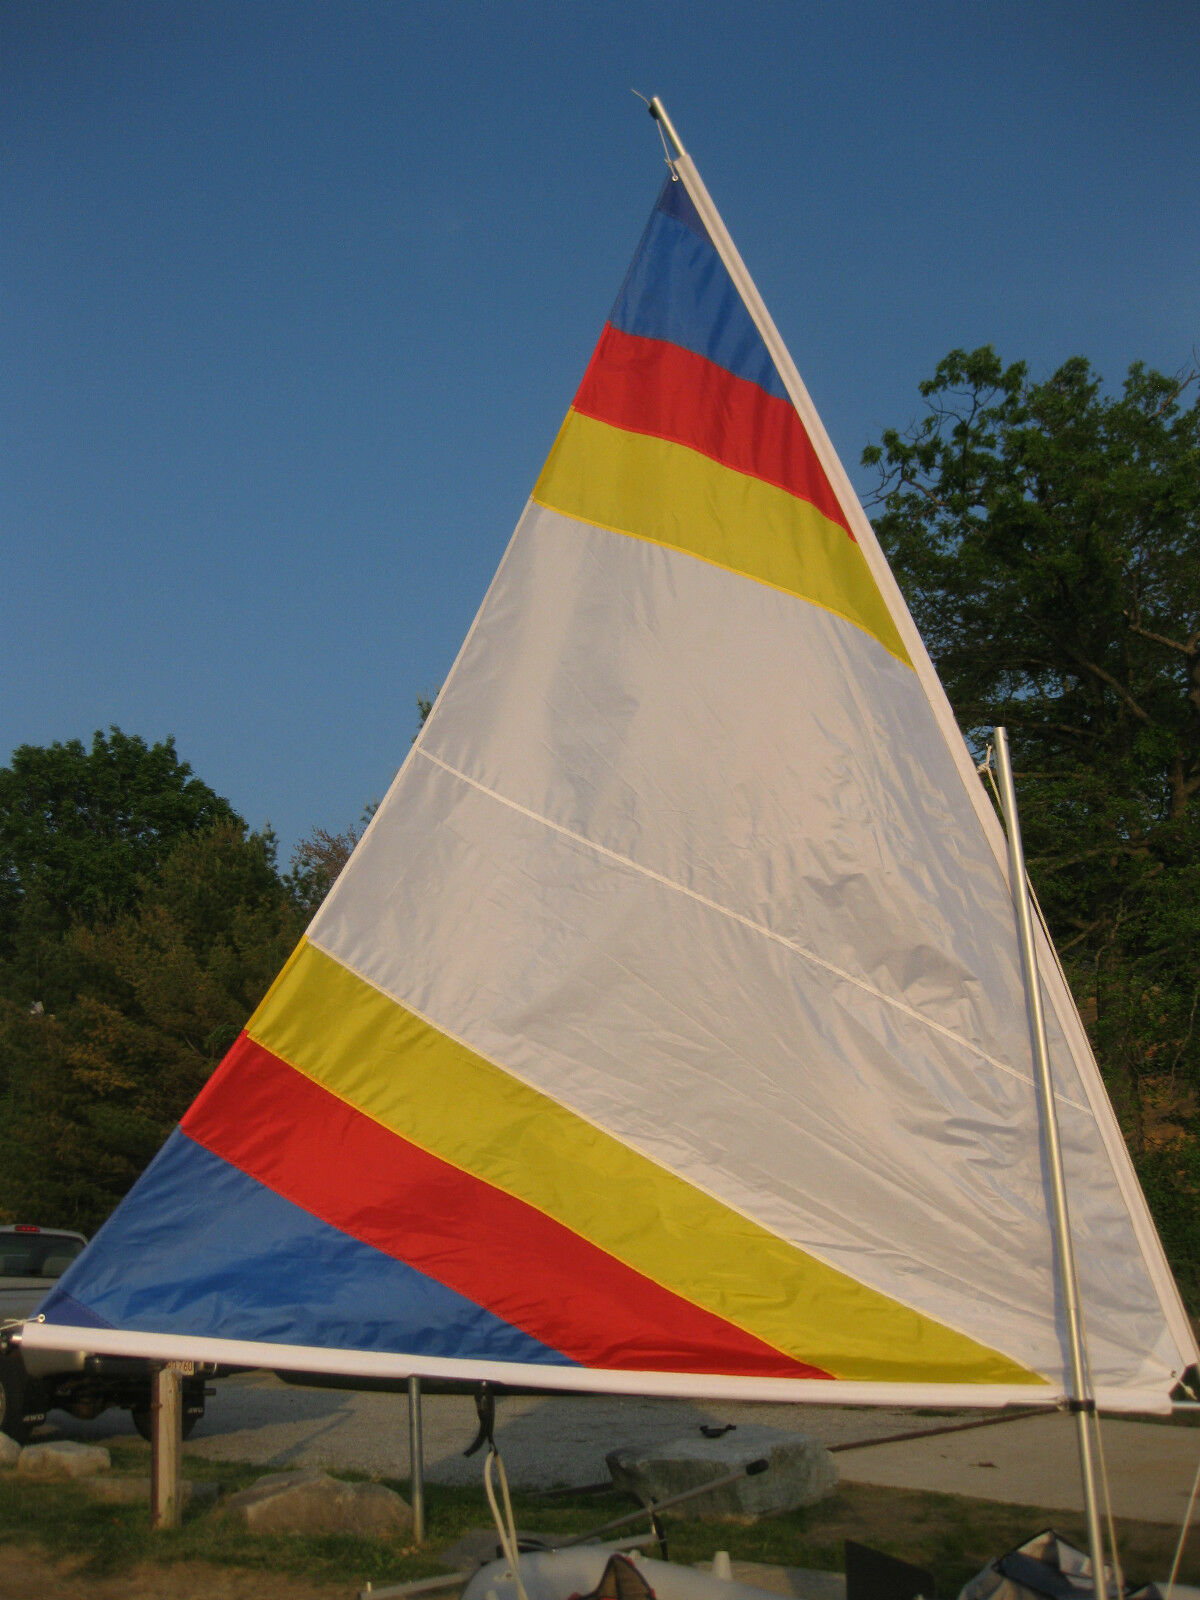 Sail for Snark Sunflower 3.3 -  55 SF - White with Rainbow Stripes - Sail Only